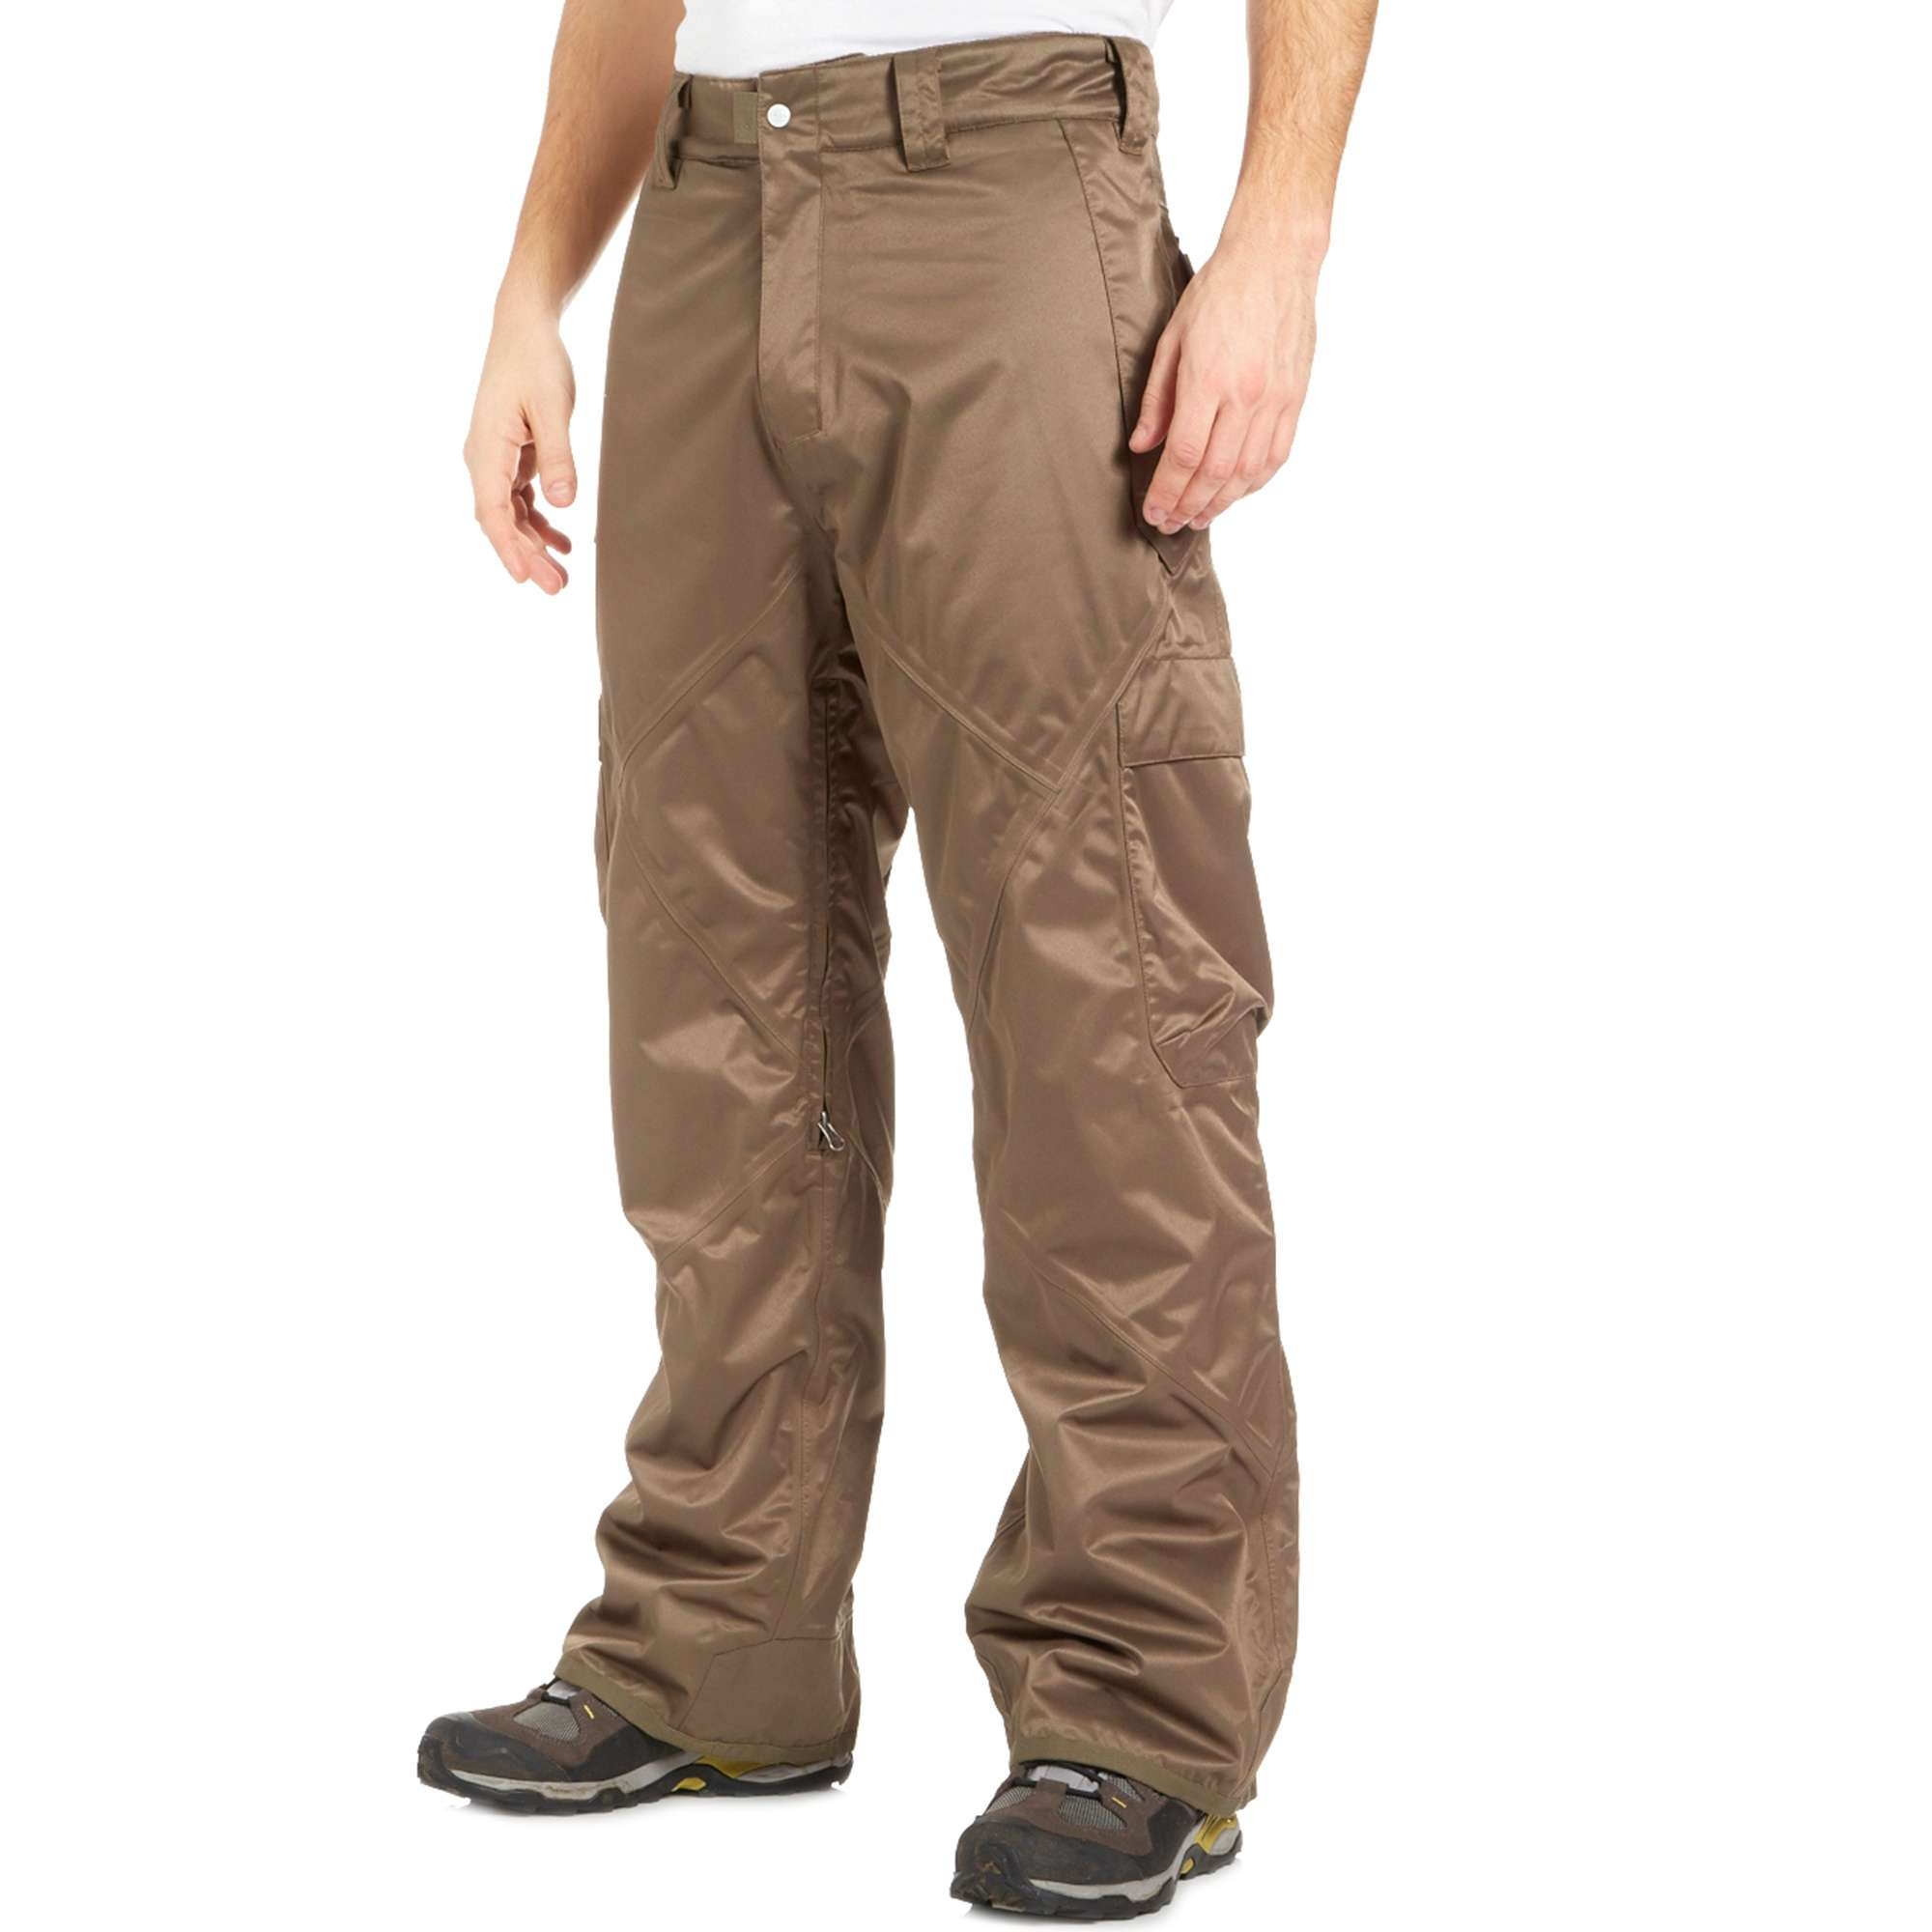 FAIISE Men's Alex Belted Ski Pants